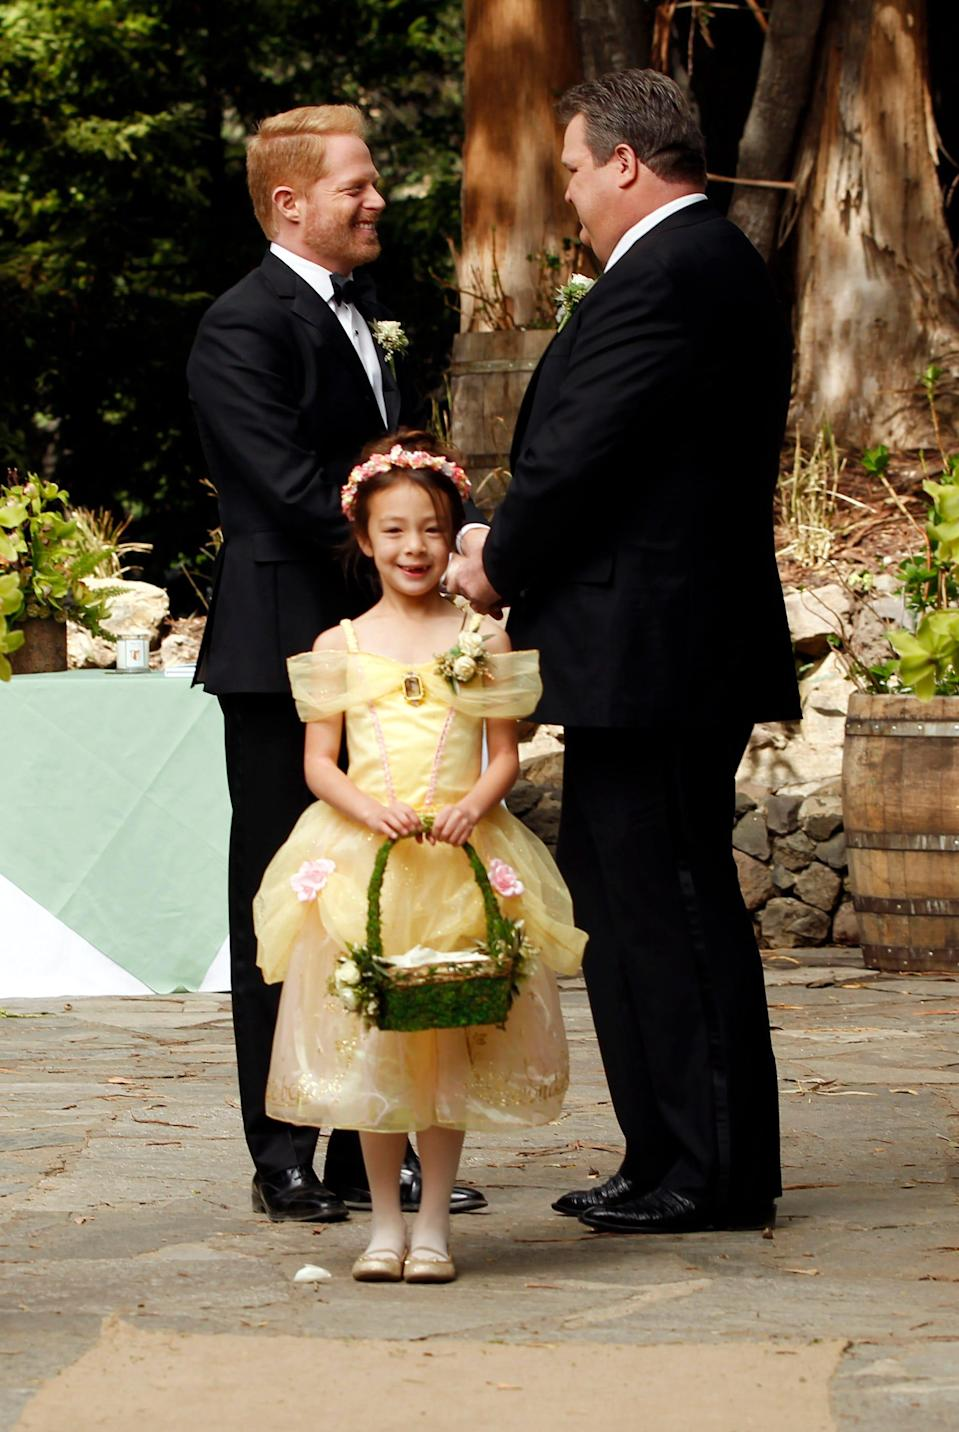 """Aubrey Anderson-Emmons, Jesse Tyler Ferguson and Eric Stonestreet in season five of """"Modern Family,"""" in which Mitch and Cam got married with their daughter, Lily, serving as flower girl."""